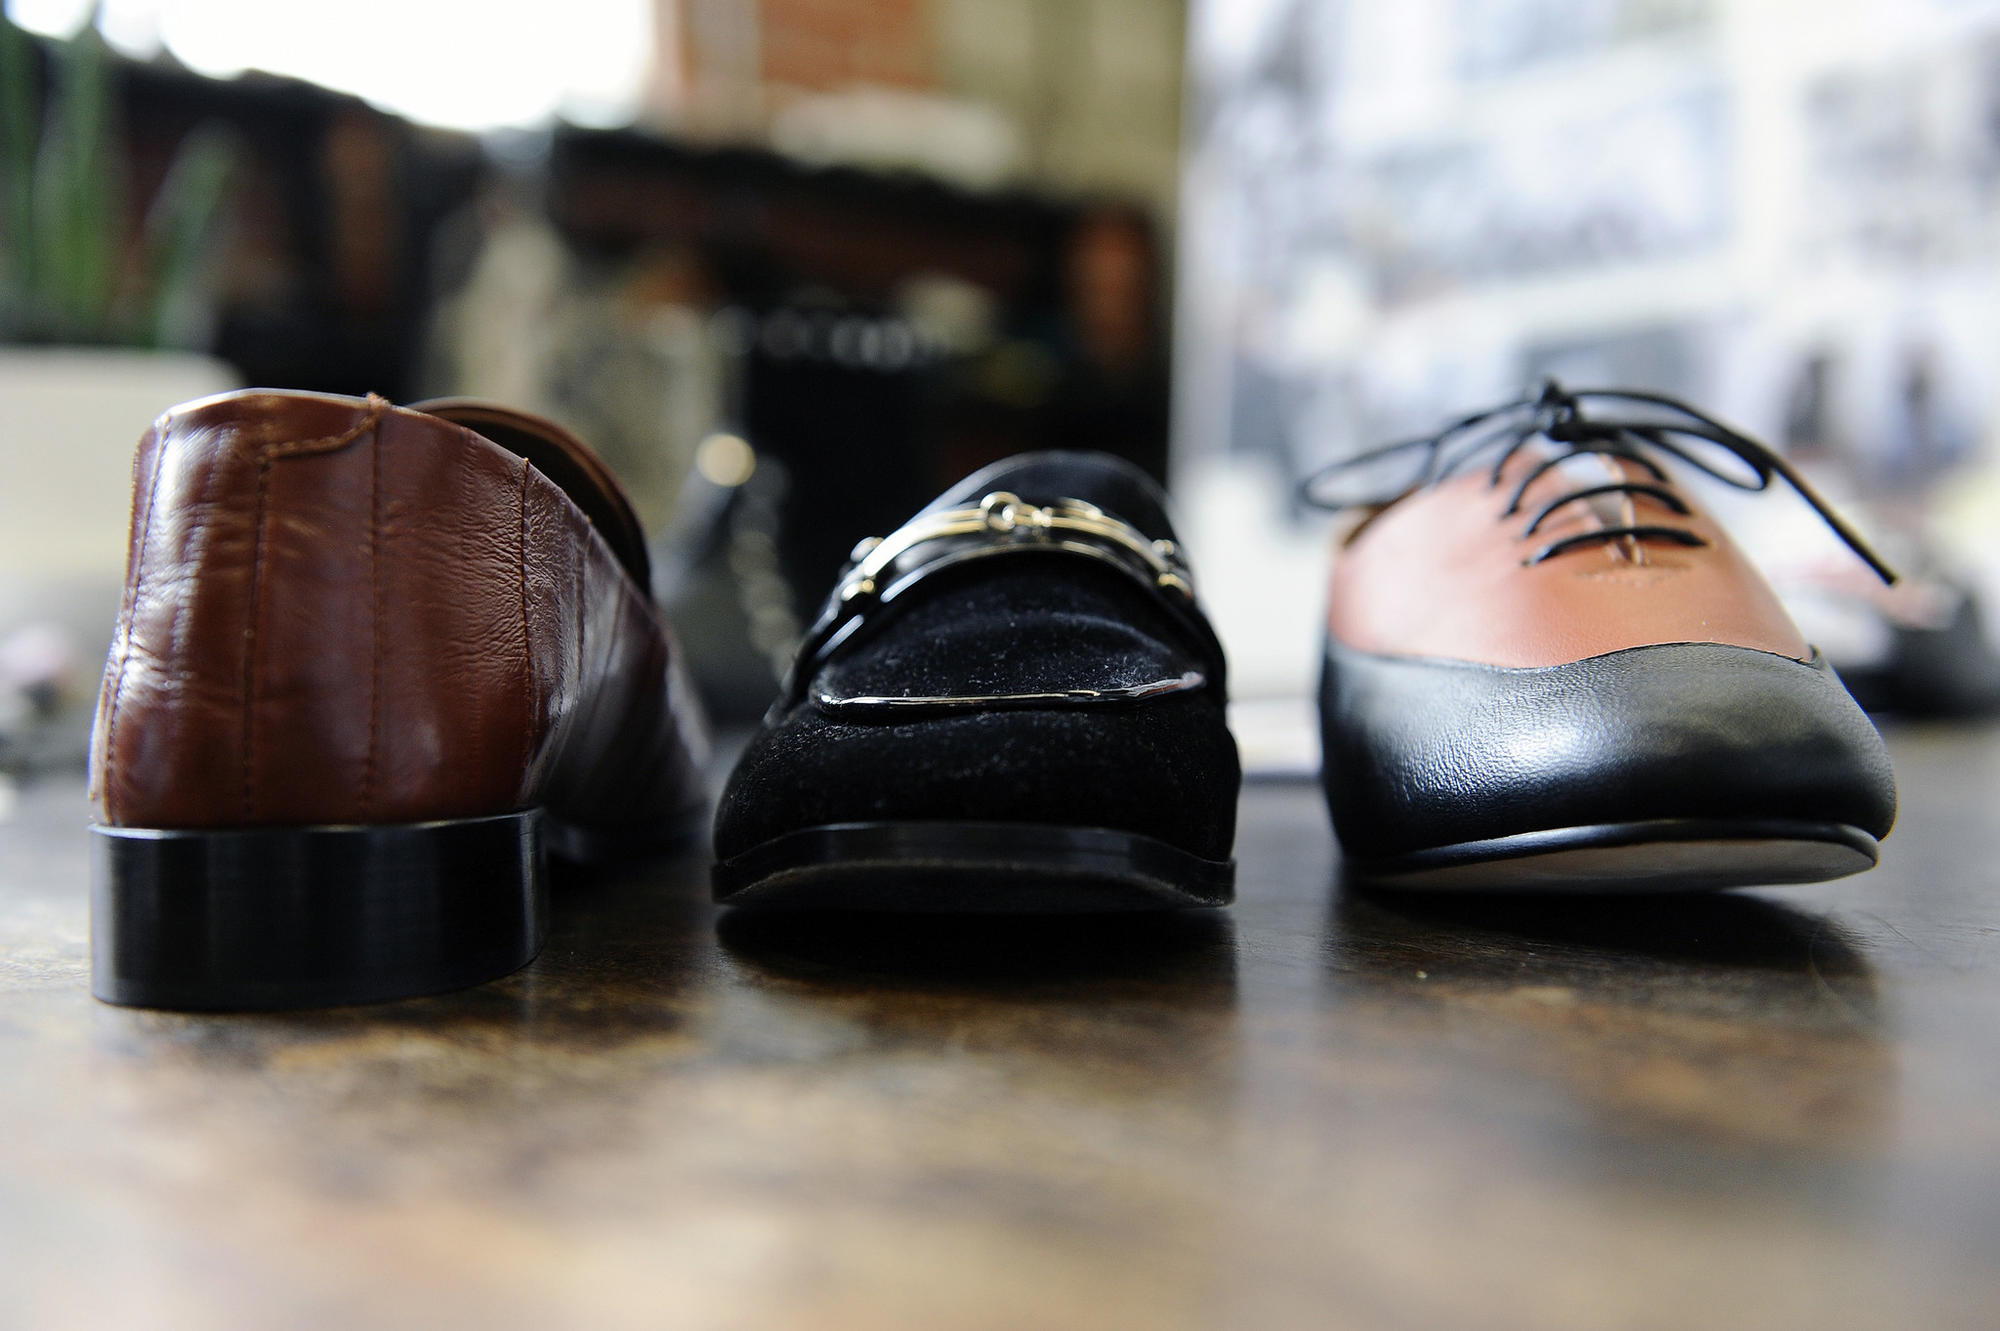 A look at footwear inside the studio of Newbark in Los Angeles.